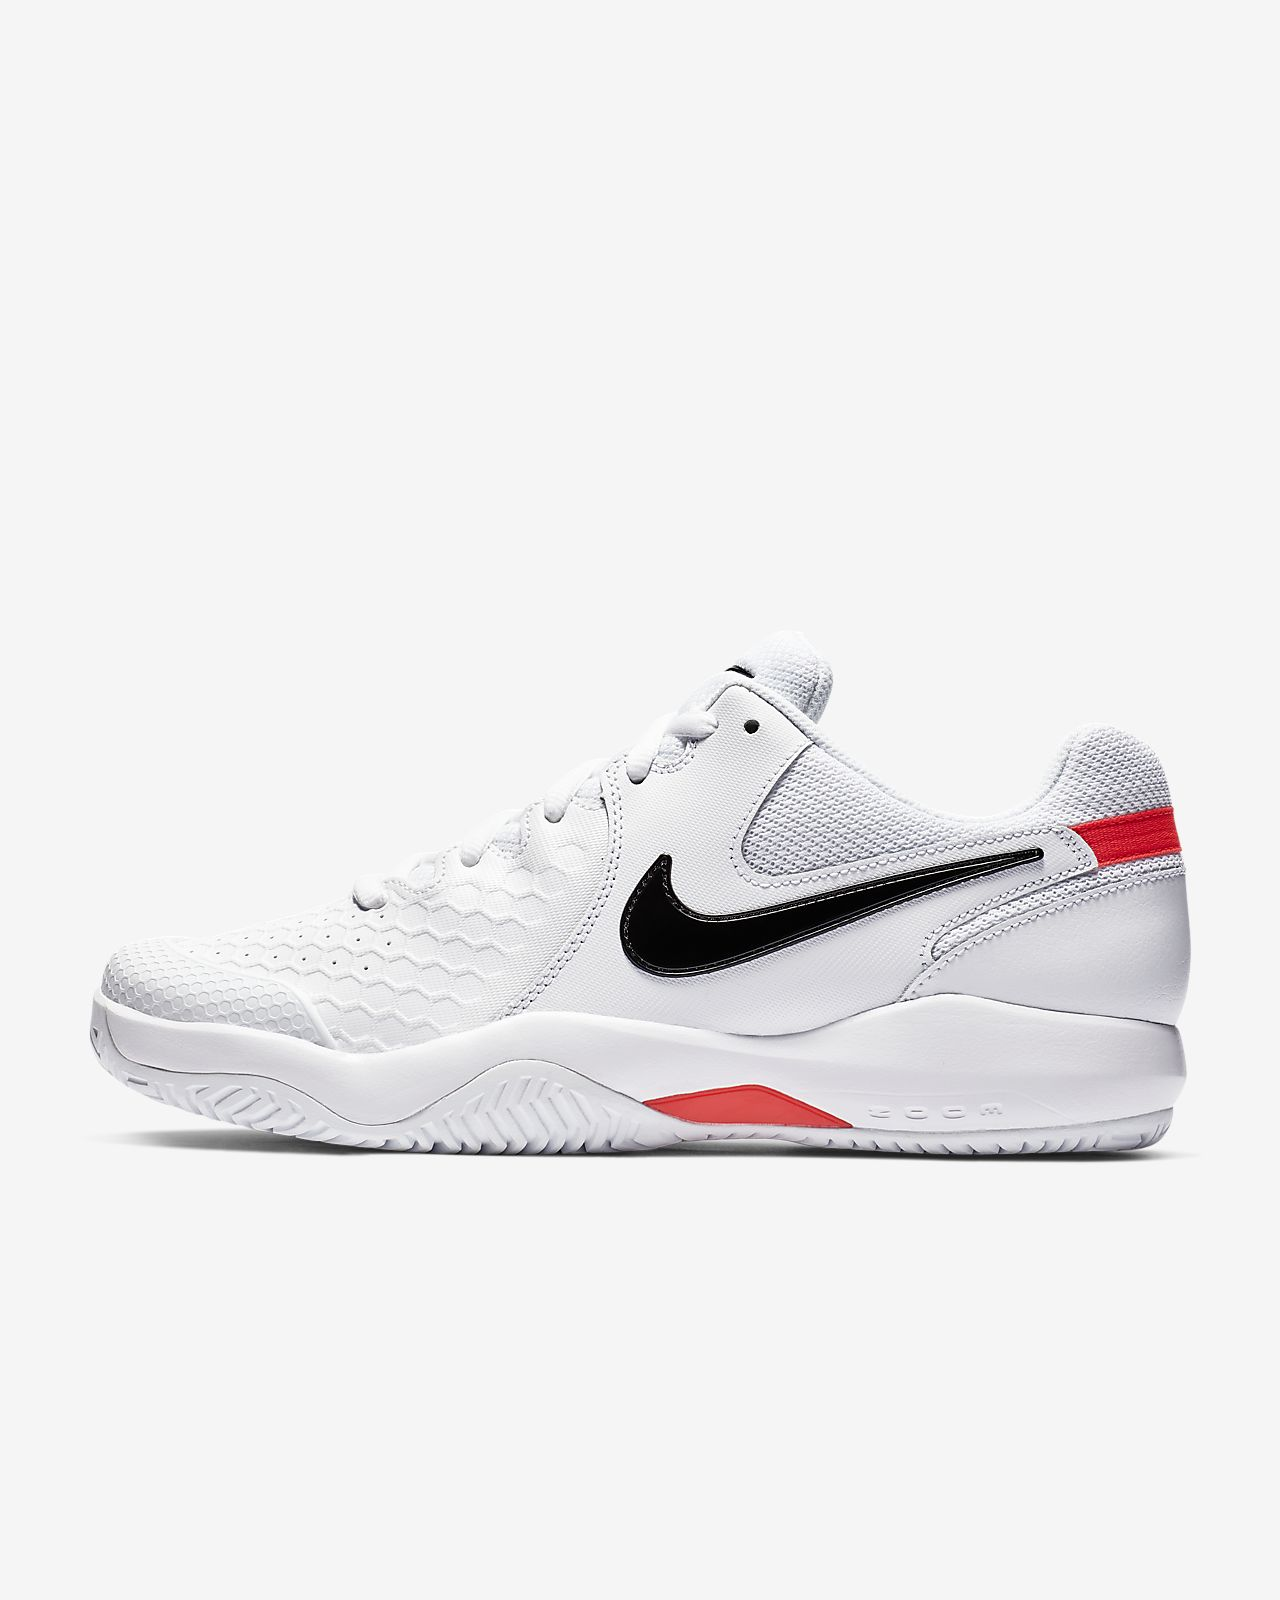 c01c9dfdf14 NikeCourt Air Zoom Resistance Men s Hard Court Tennis Shoe. Nike.com